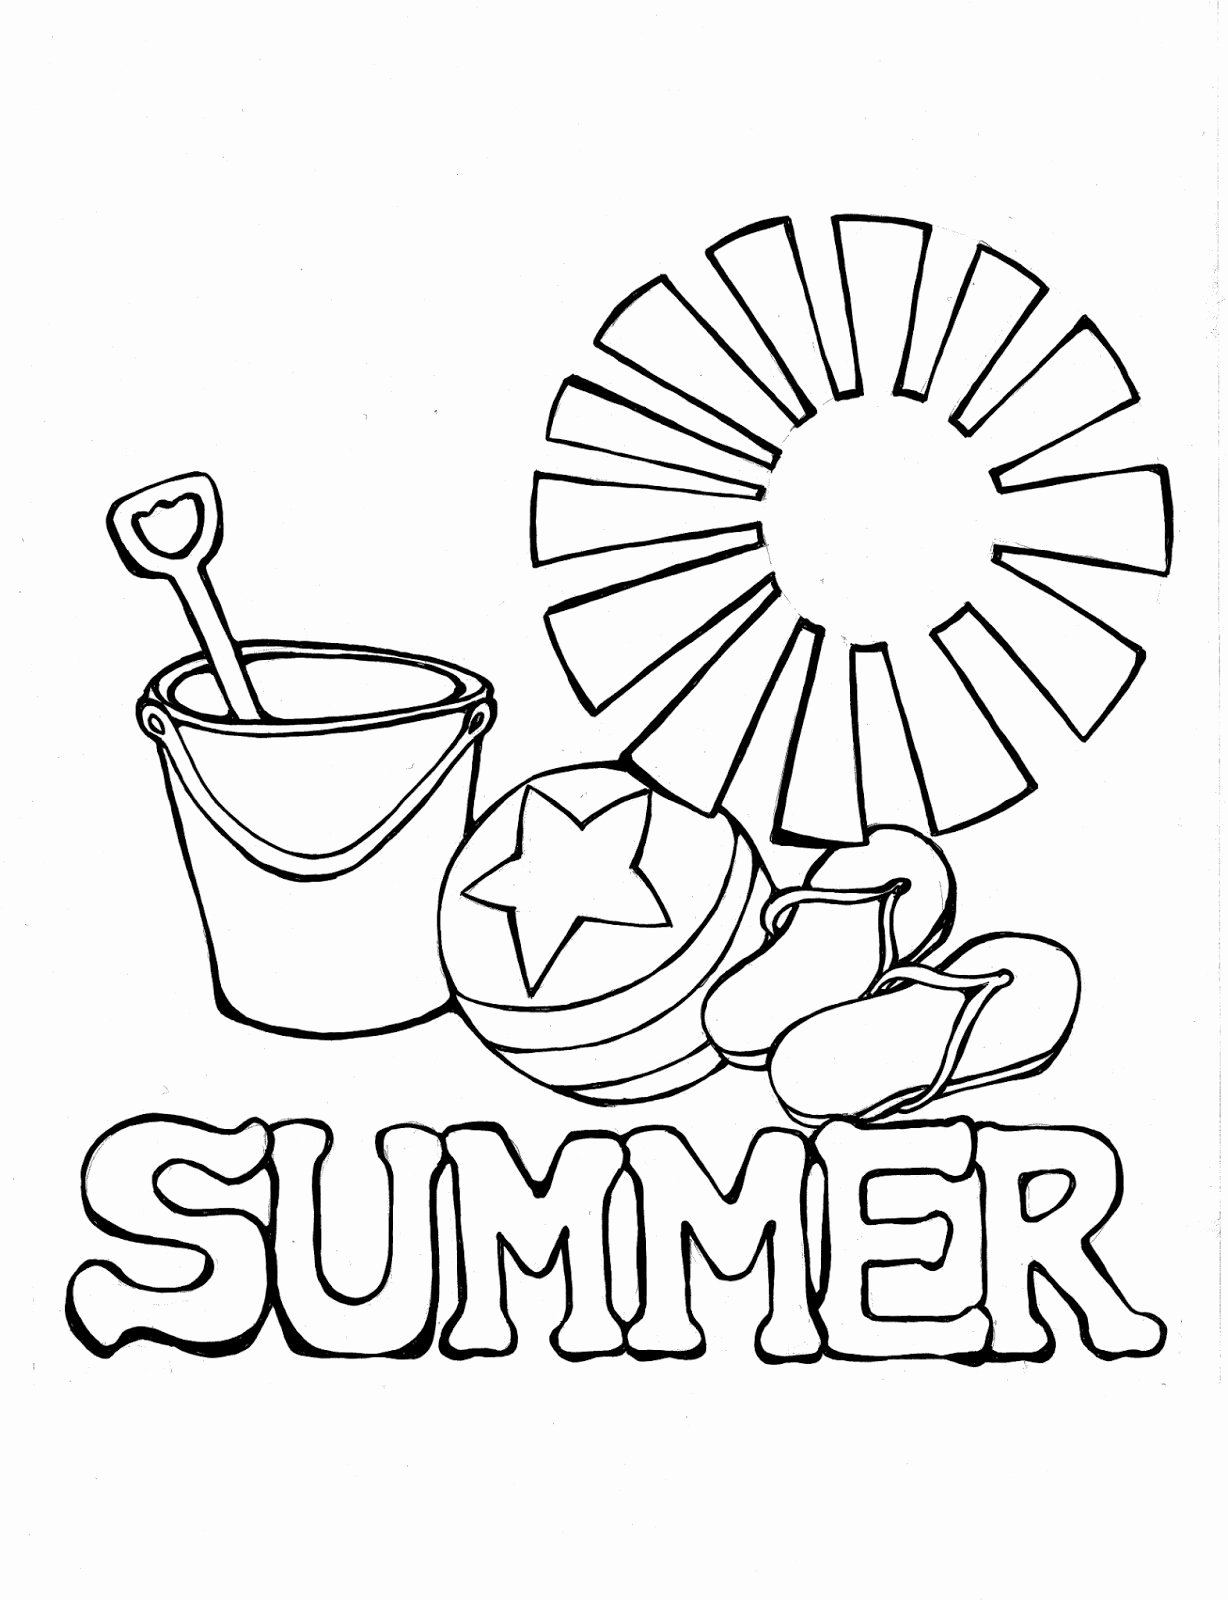 Summer Coloring Worksheets for Preschoolers top Coloring Book Worksheet Preschool Pages Summer Worksheets